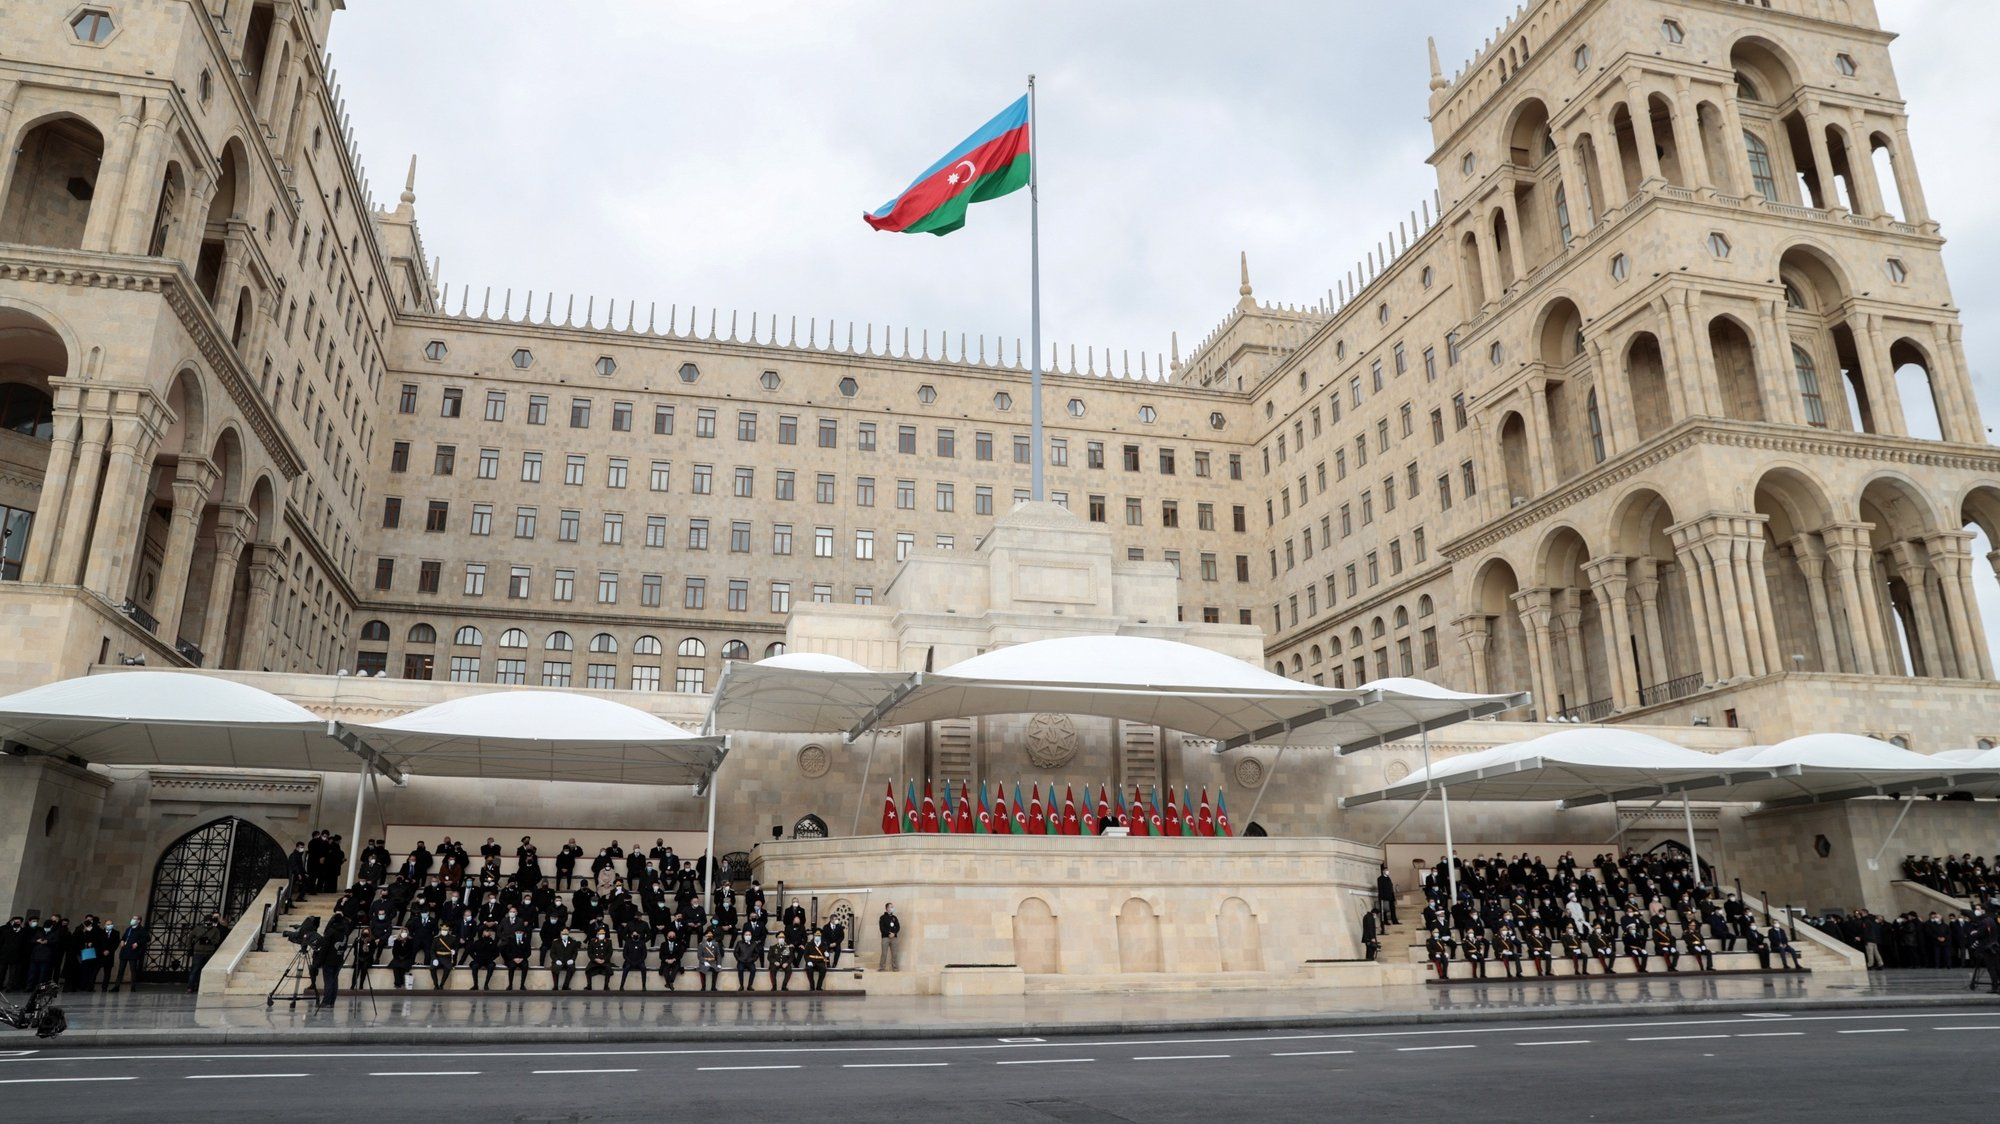 epa08874747 Azerbaijani President Ilham Aliyev (C) attends a military parade dedicated to the victory in the Nagorno-Karabakh armed conflict, in Baku, Azerbaijan, 10 December 2020. The simmering territorial conflict between Azerbaijan and Armenia over Nagorno-Karabakh territory erupted into a war between the two countries on 27 September 2020 along the contact line of the self-proclaimed Nagorno-Karabakh Republic (also known as Artsakh). On 09 November 2020 Presidents of Azerbaijan and Russia and Armenian Prime Minister signed a joint statement announcing a complete ceasefire and halt of all military operations in the Nagorno-Karabakh conflict zone, and return of the Aghdam, Kalbajar and Lachin districts to Azerbaijan.  EPA/POMAN ISMAYILOV